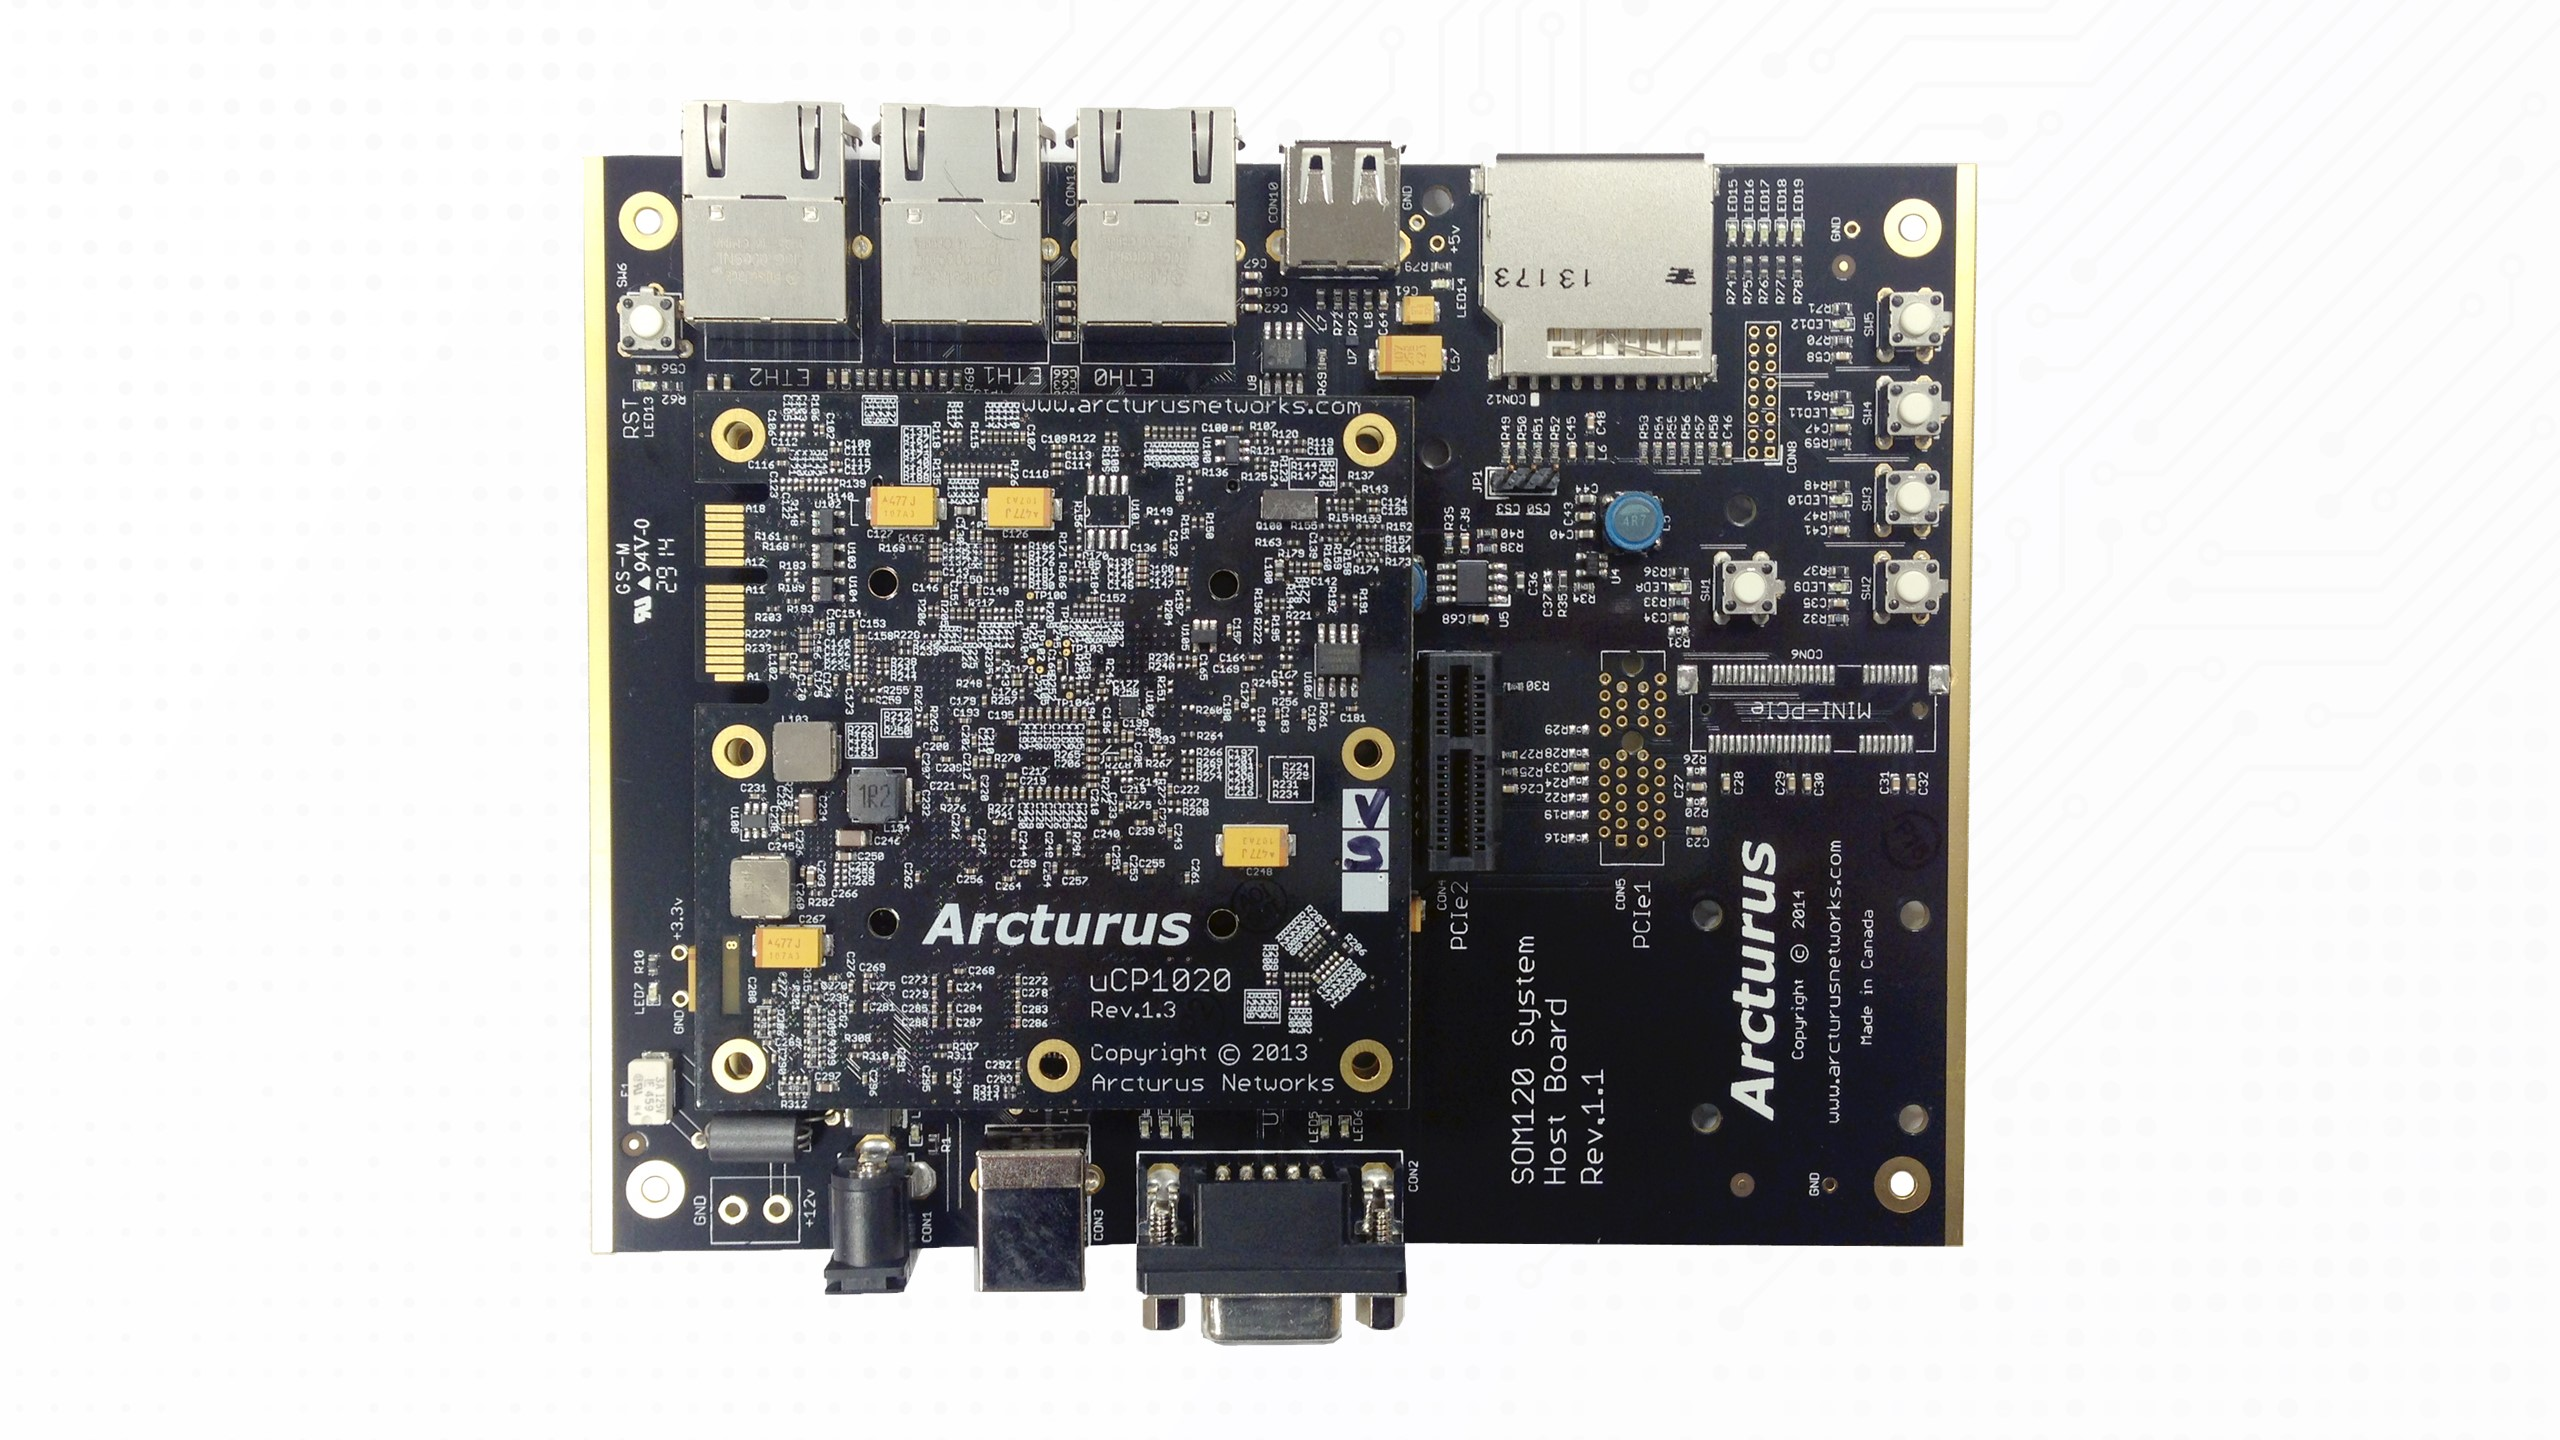 uCP1020 Module and Hostboard